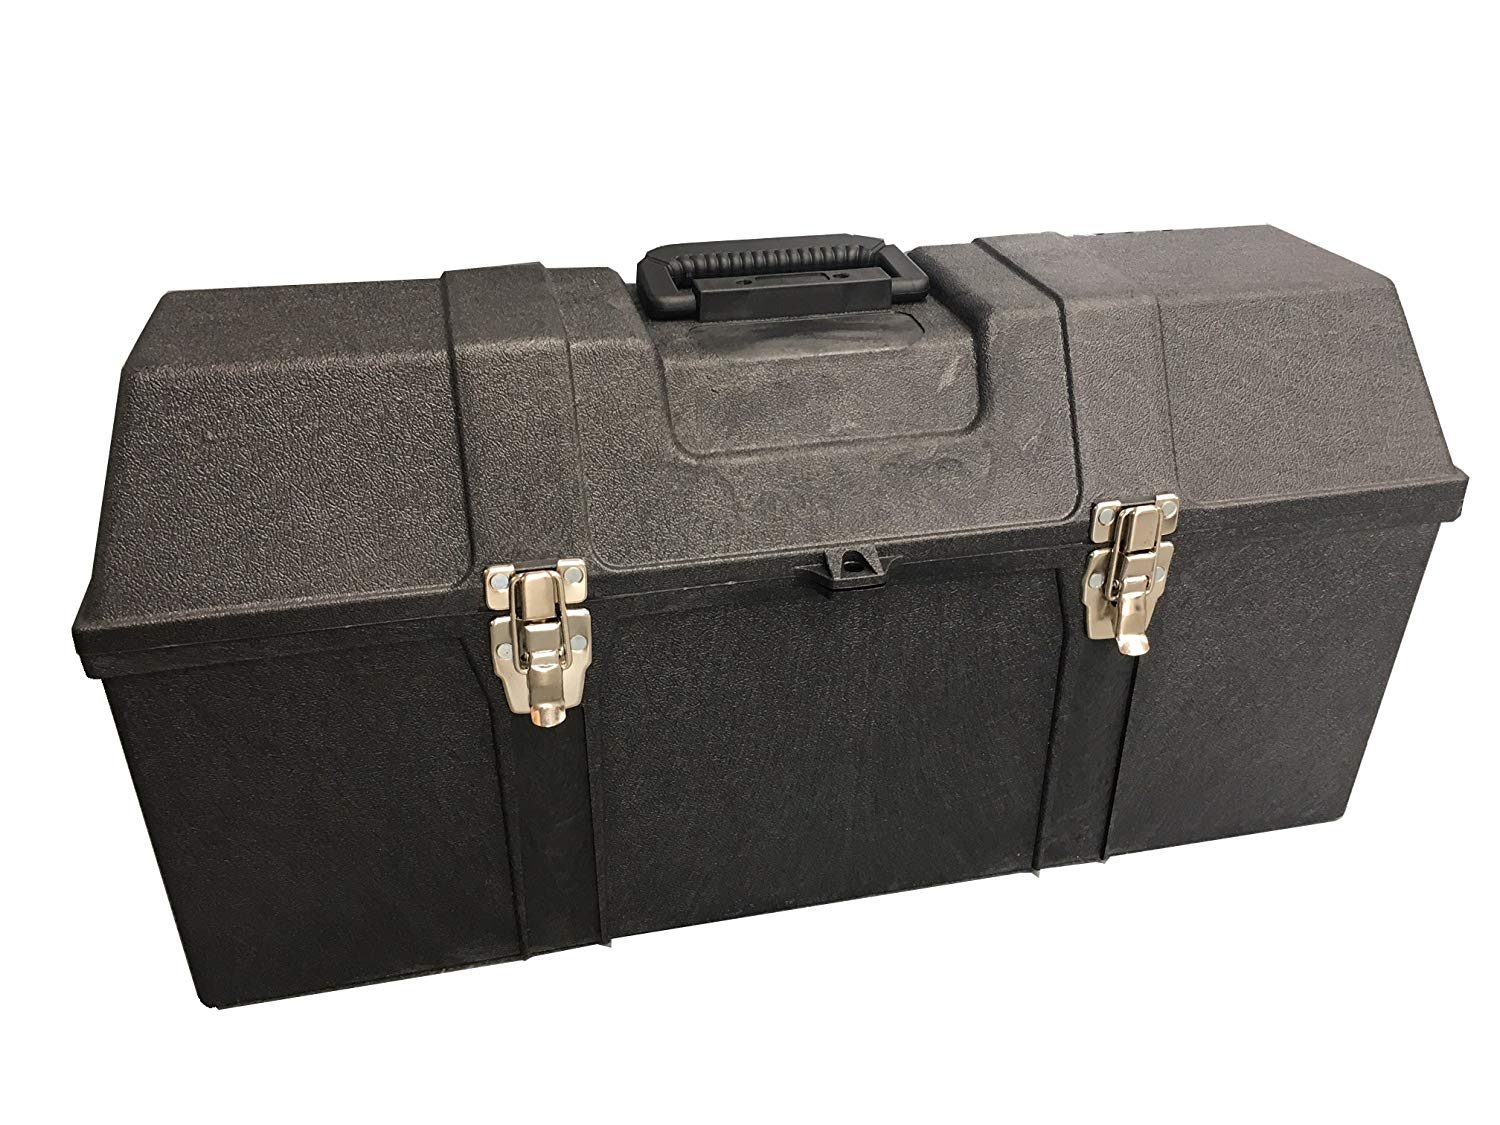 Awesome Cheap Contico Tool Box Find Contico Tool Box Deals On Line Uwap Interior Chair Design Uwaporg